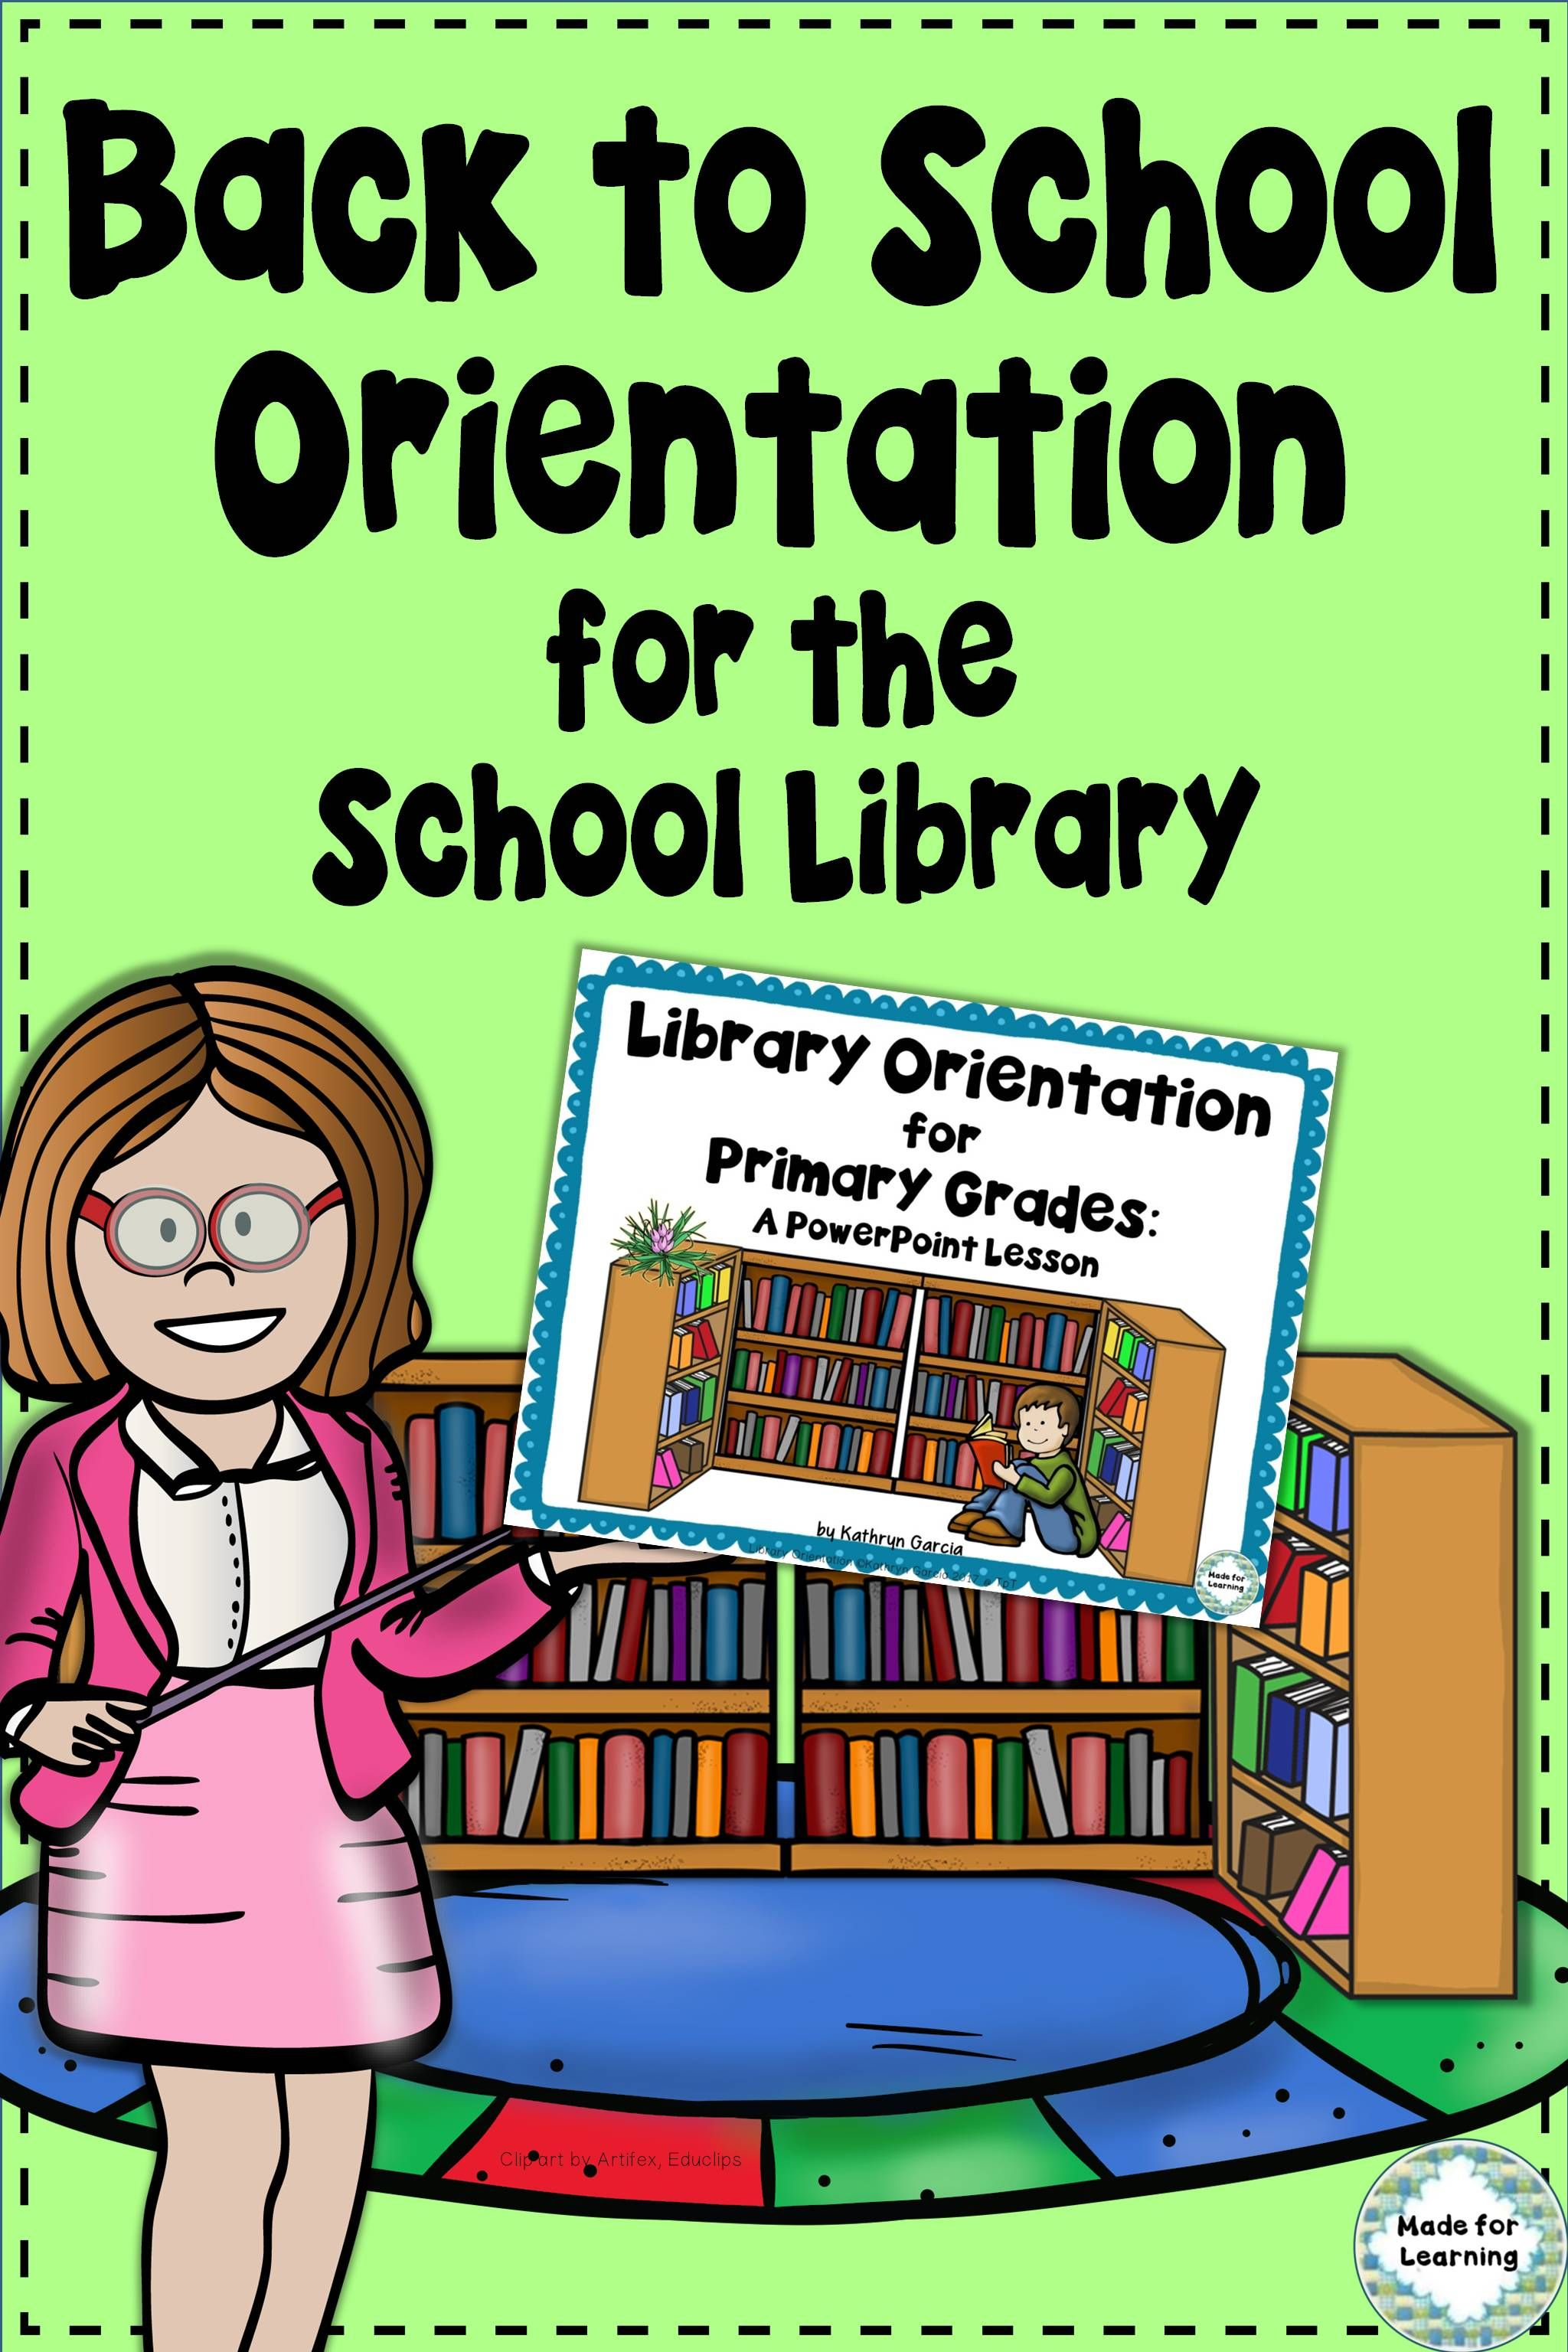 A Fun Back To School Powerpoint Lesson To Use For Primary Orientation In The School Library